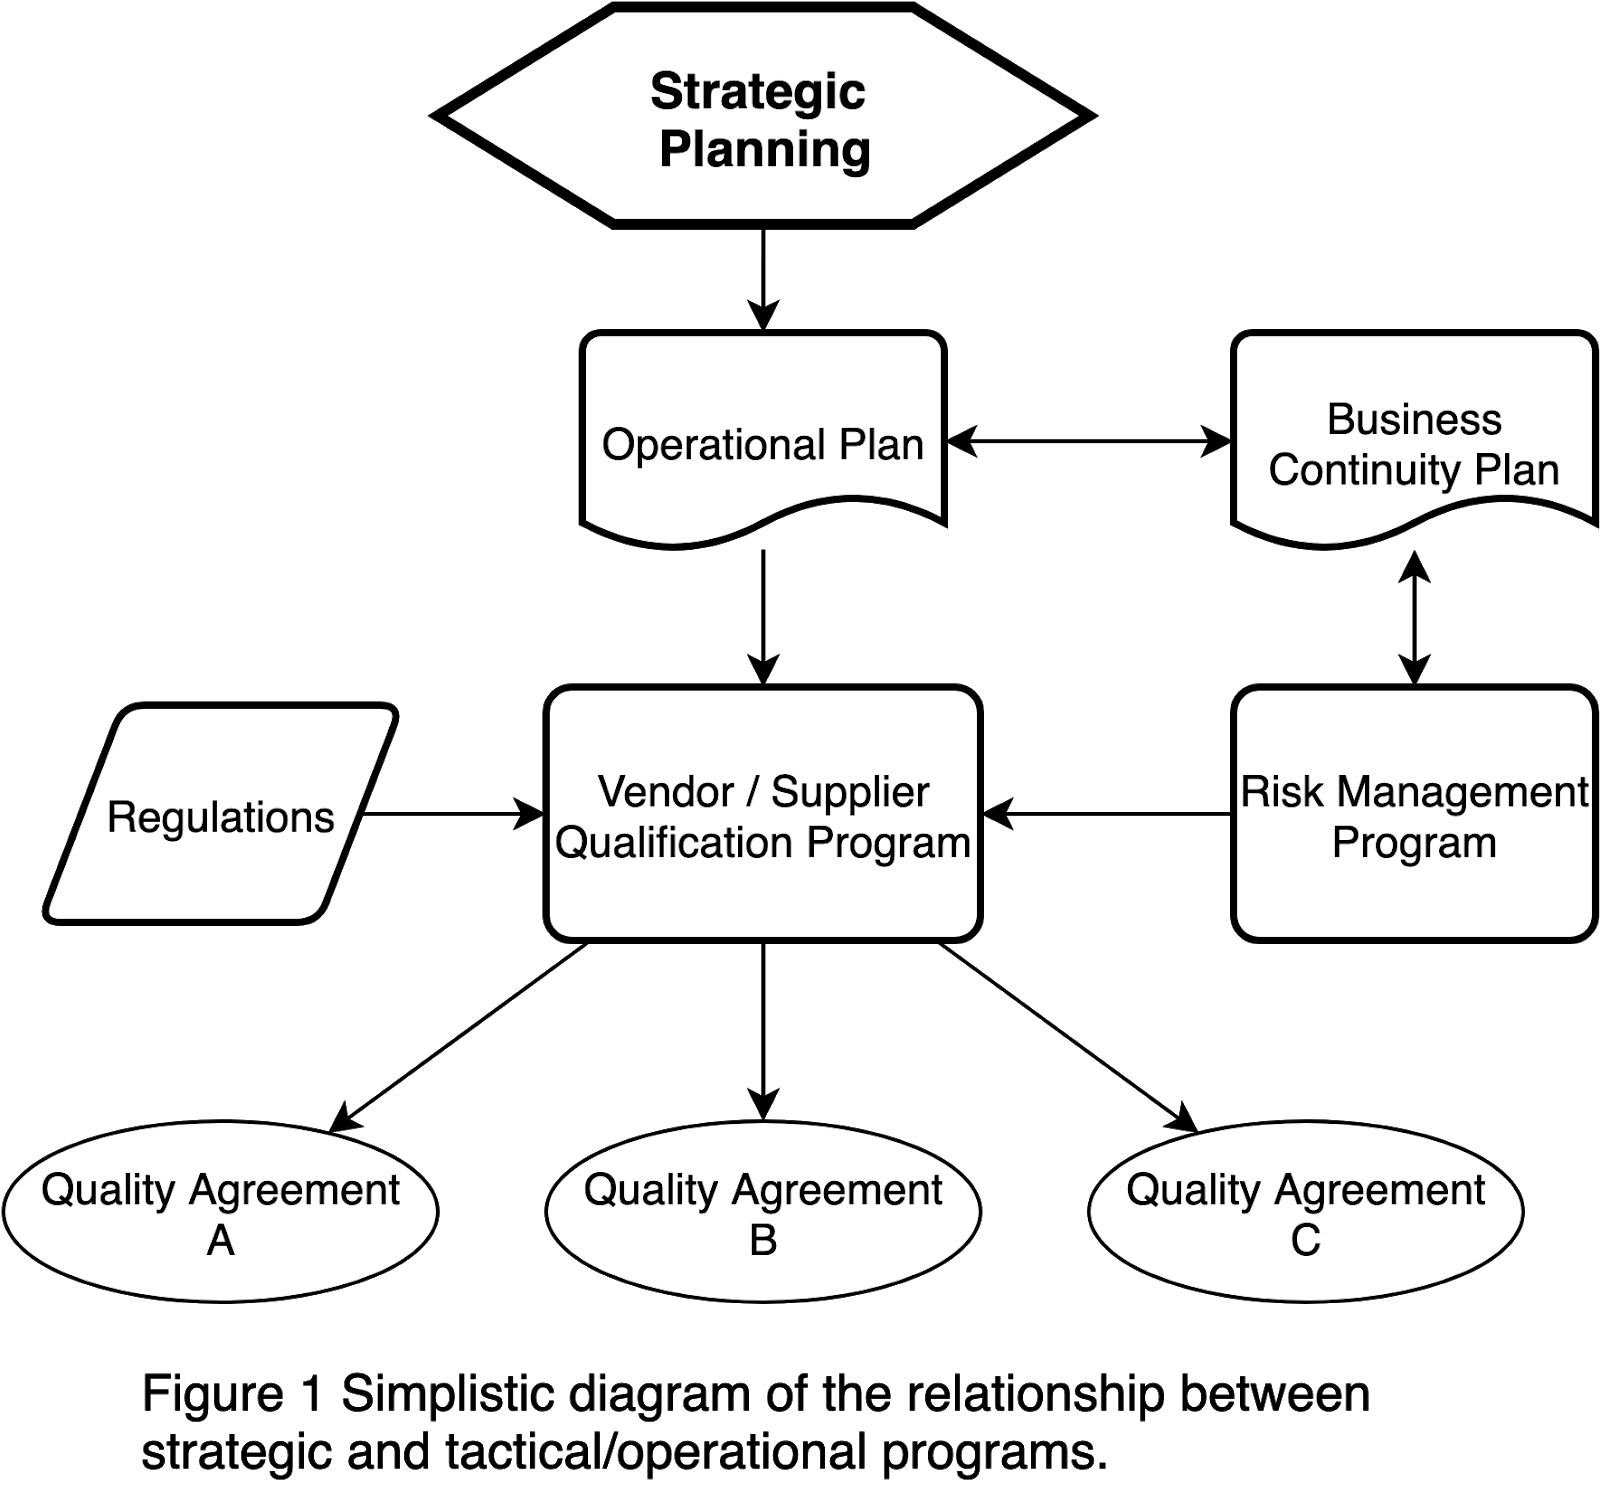 Simplistic diagram of the relationship between strategic and tactical/operational programs